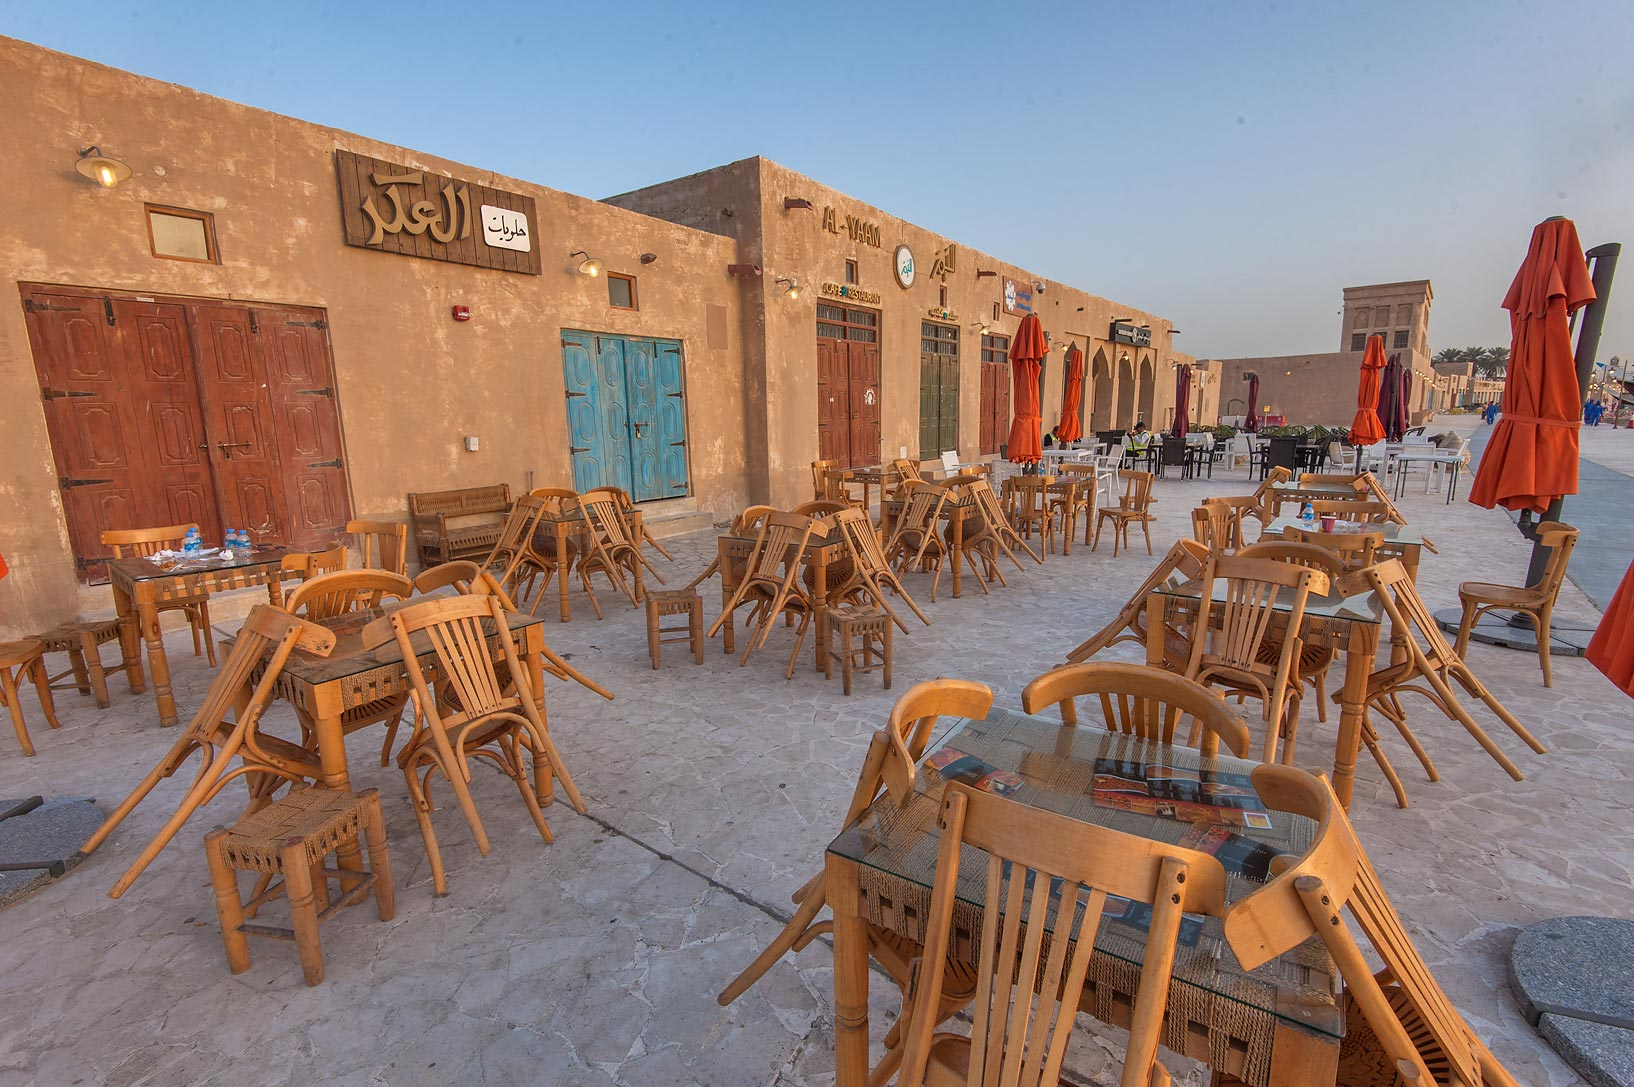 Al Yaam Restaurant on Corniche promenade at...Souq Waqif in Al Wakrah). Qatar